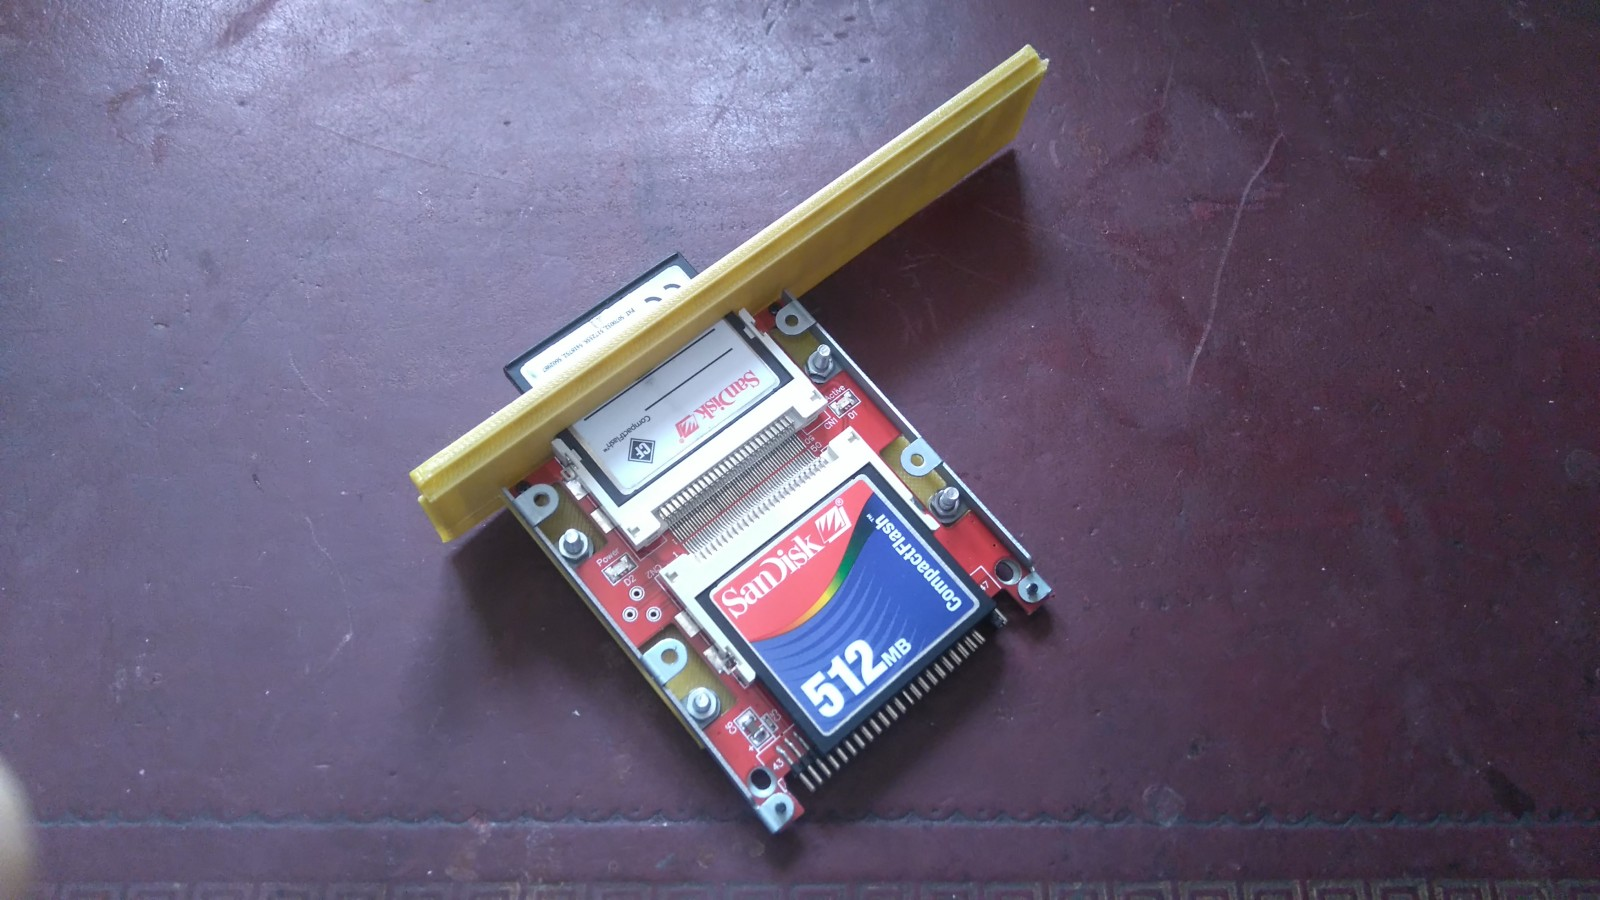 A3010 Archimedes IDE bracket printed out no. 1